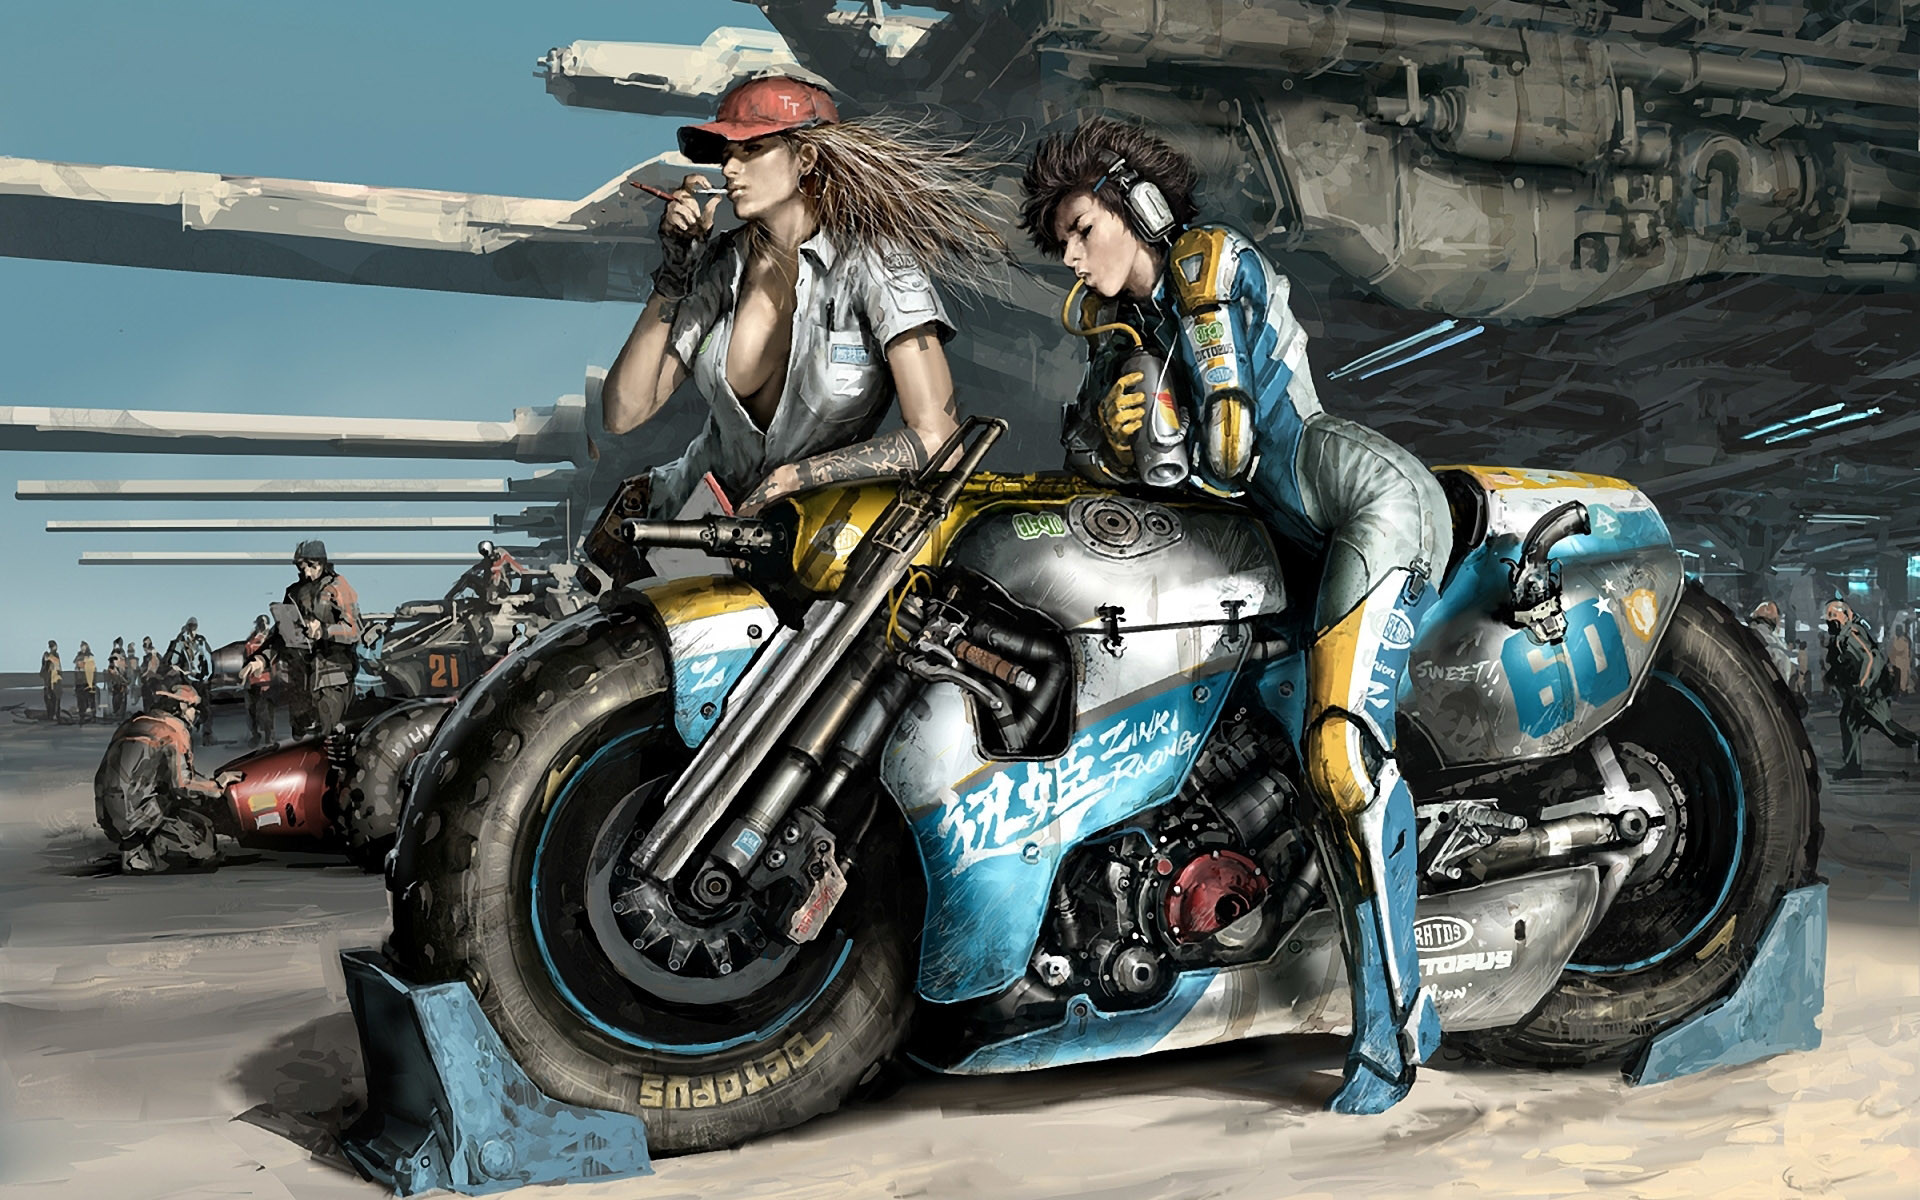 Mission dolores 2014x1343 city biker girl motorbike harley davidson hd wallpaper 1855983 sciox Image collections